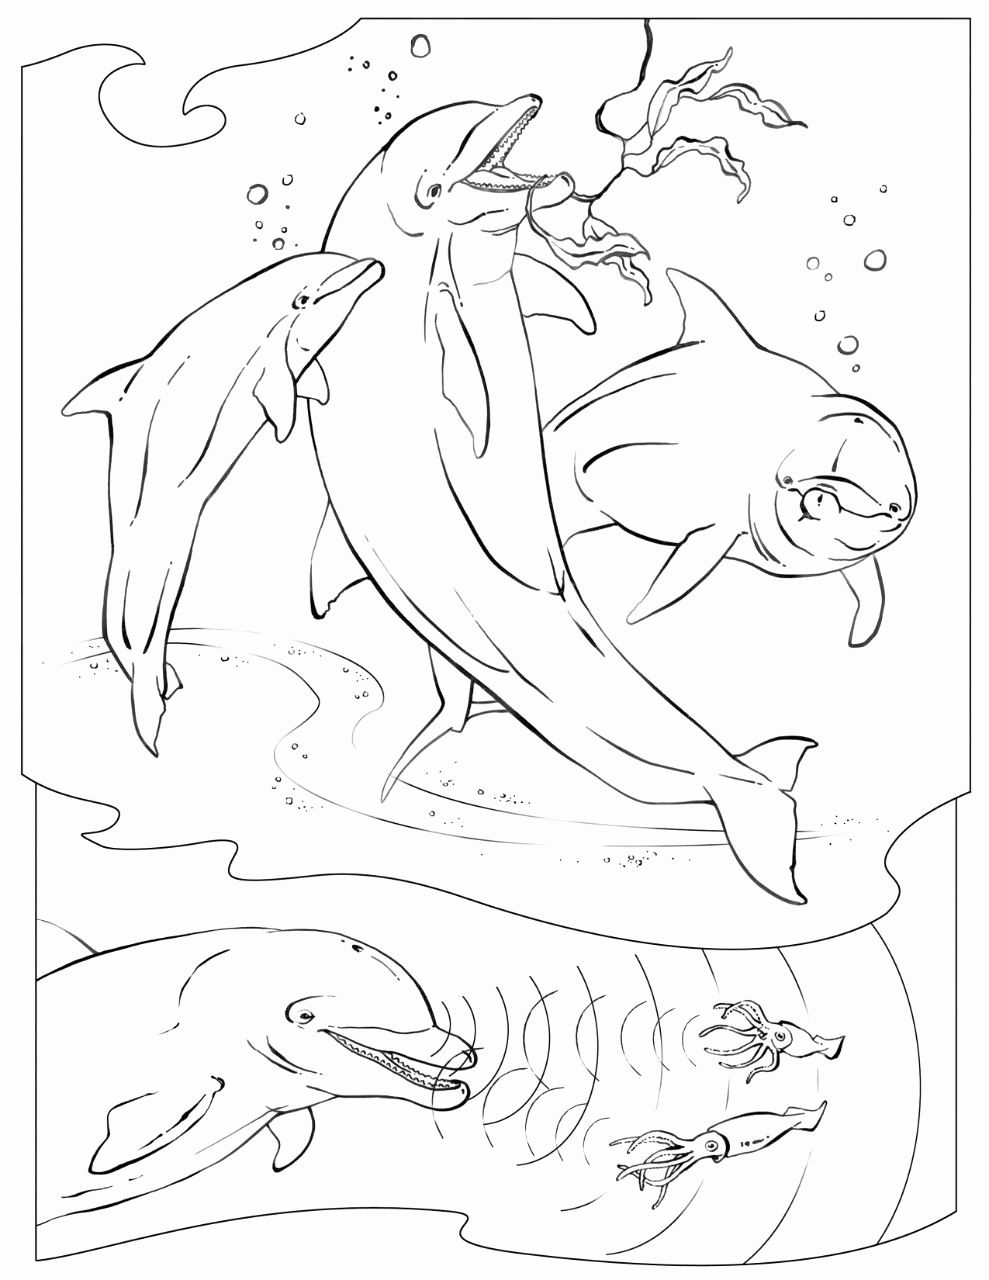 National Geographic Kids Animal Coloring Pages Dolphin Coloring Pages Animal Coloring Pages Cool Coloring Pages